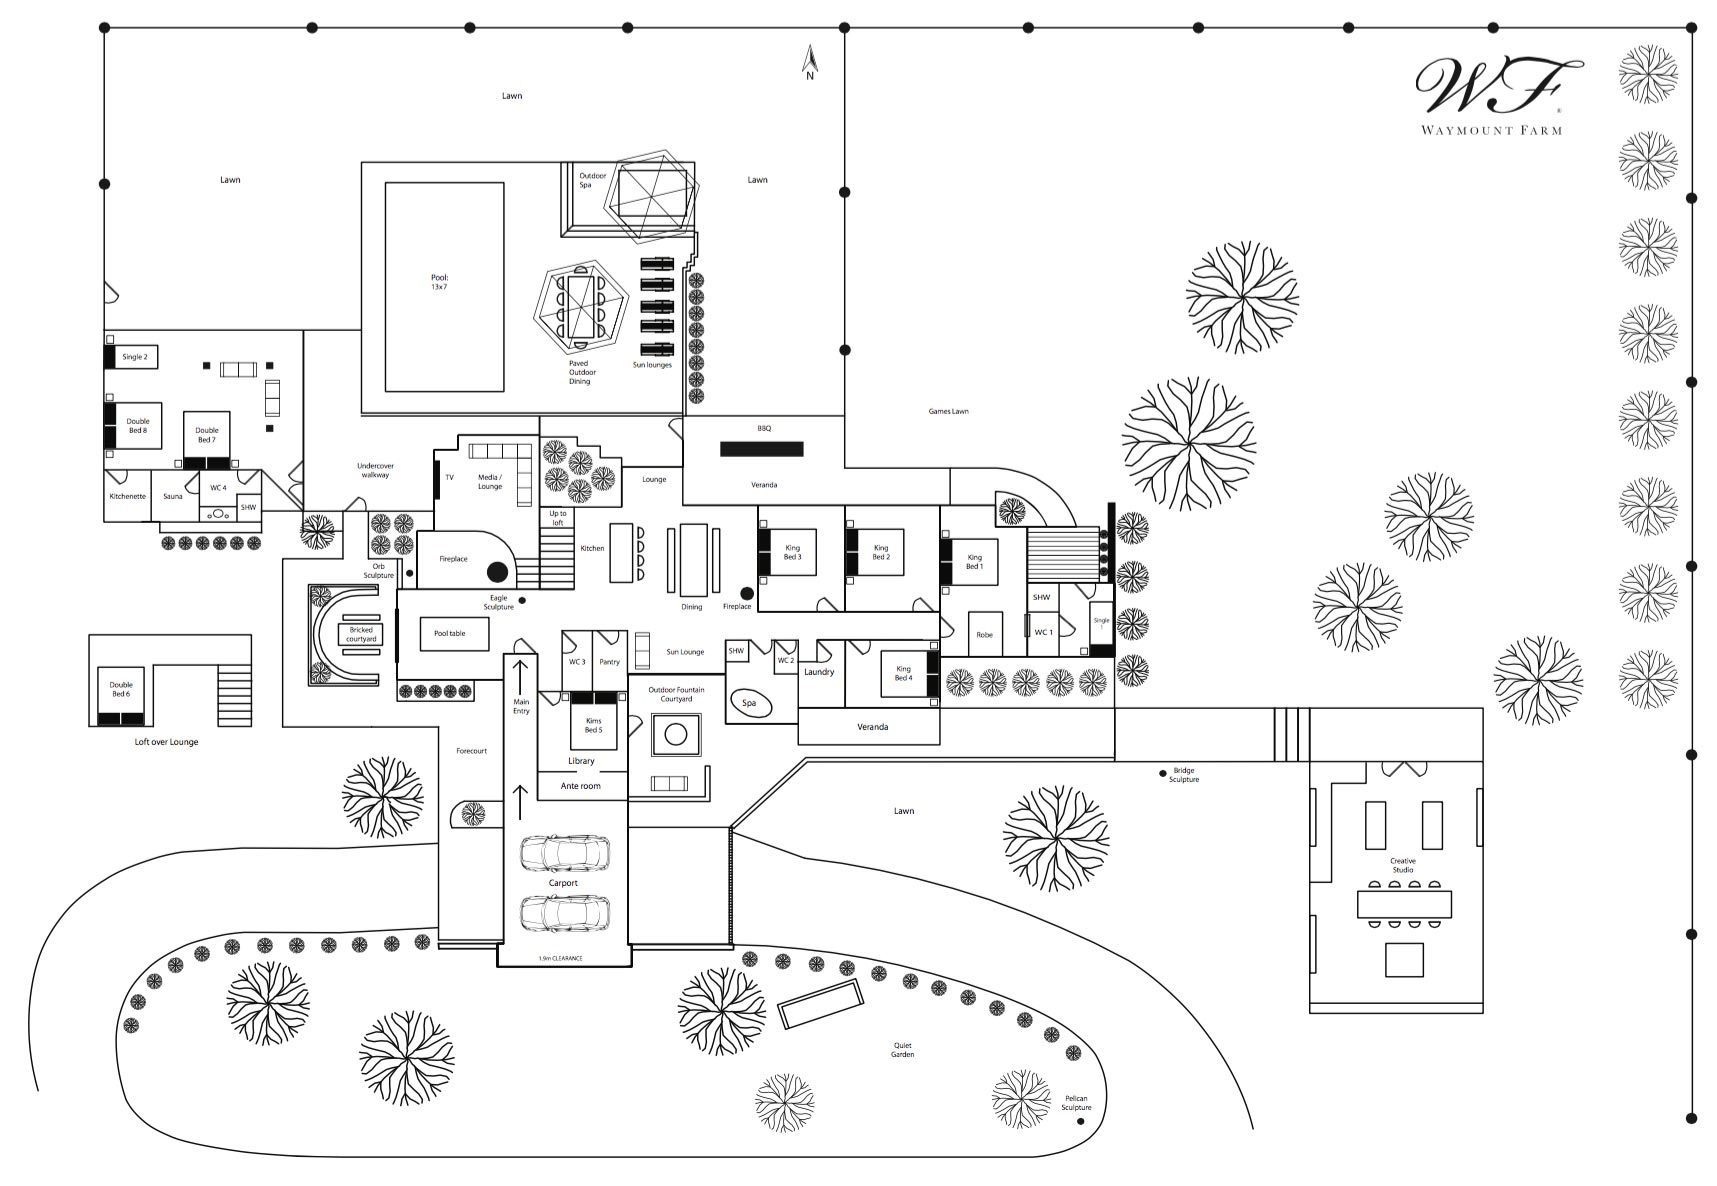 Waymount Farm Site Plan